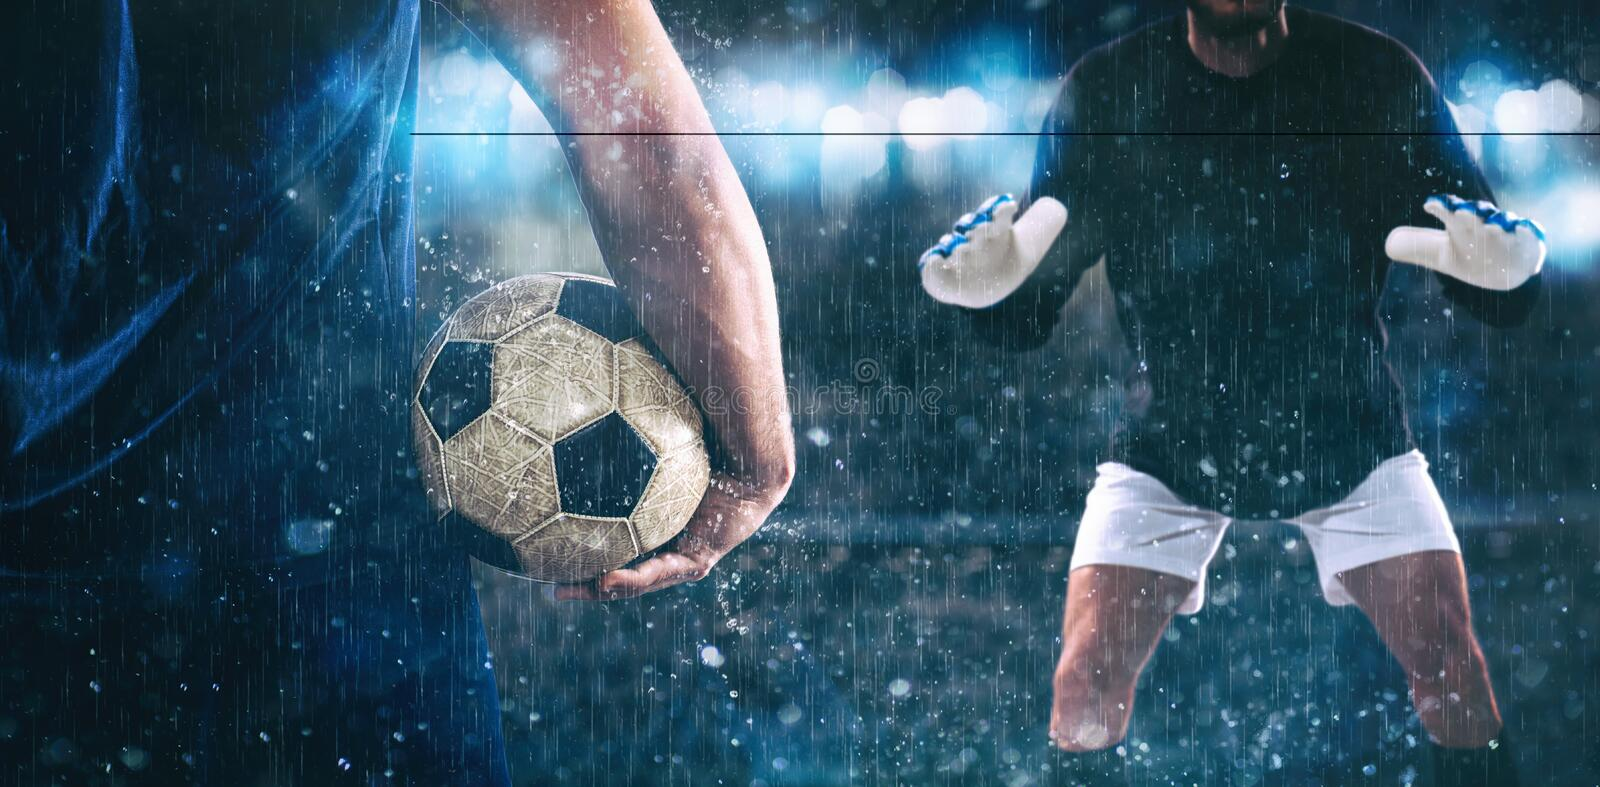 Soccer scene at night match with close up of a soccer striker holding the ball against the opposing goalkeeper. Challenge between the attacker and the goalkeeper royalty free stock photo